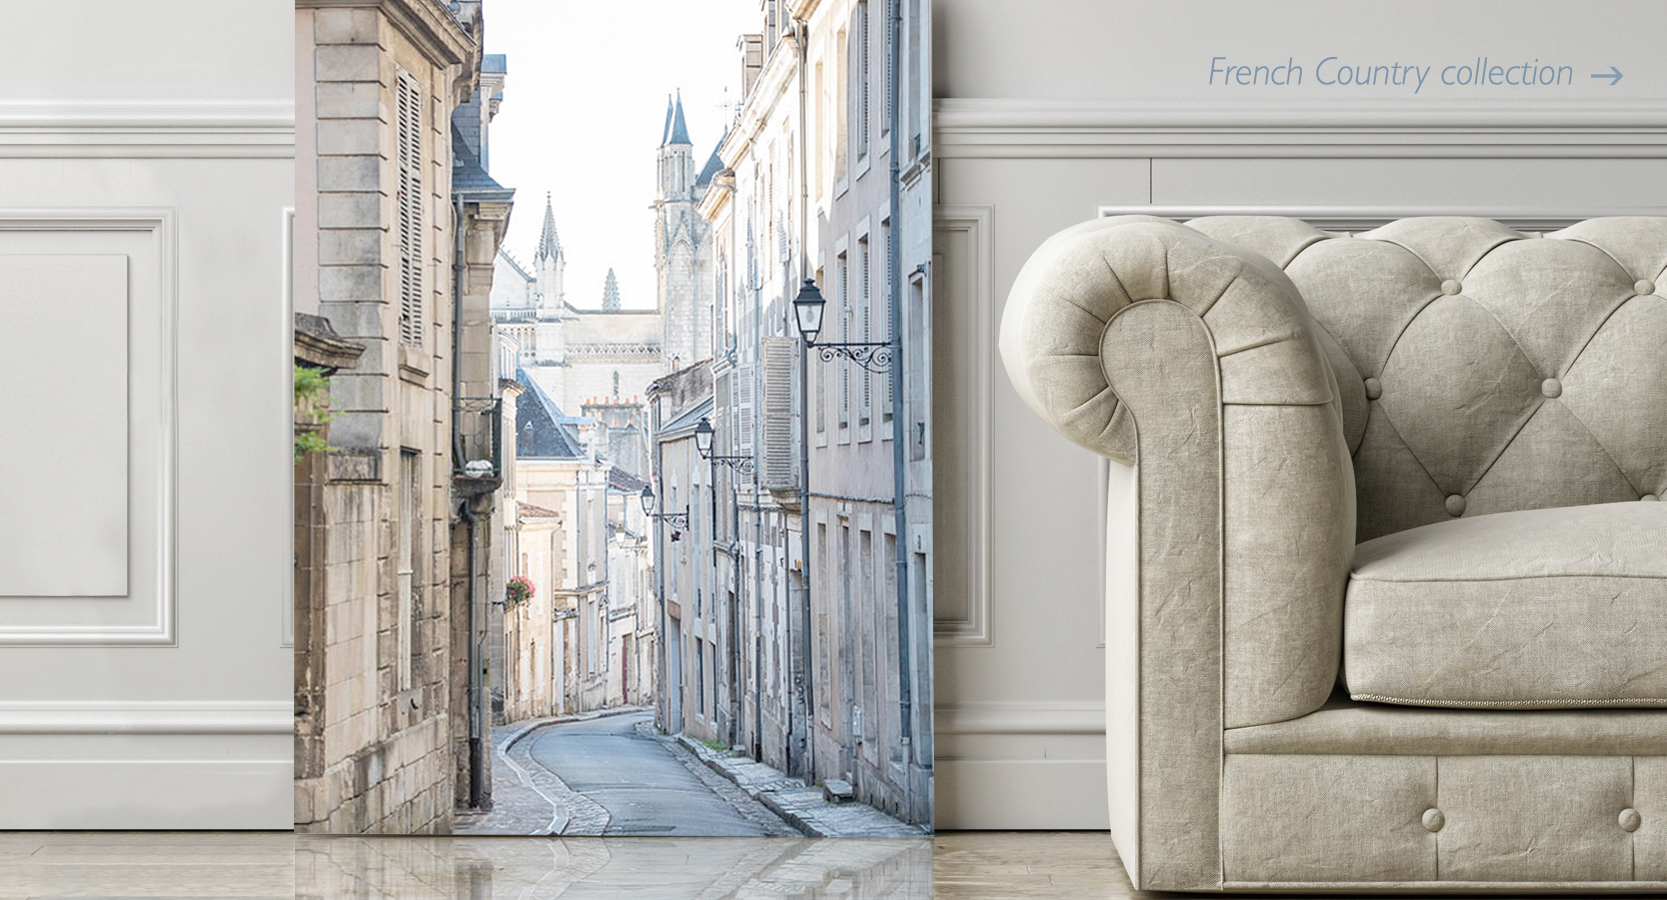 French Country Home Decor Wall Art Collection